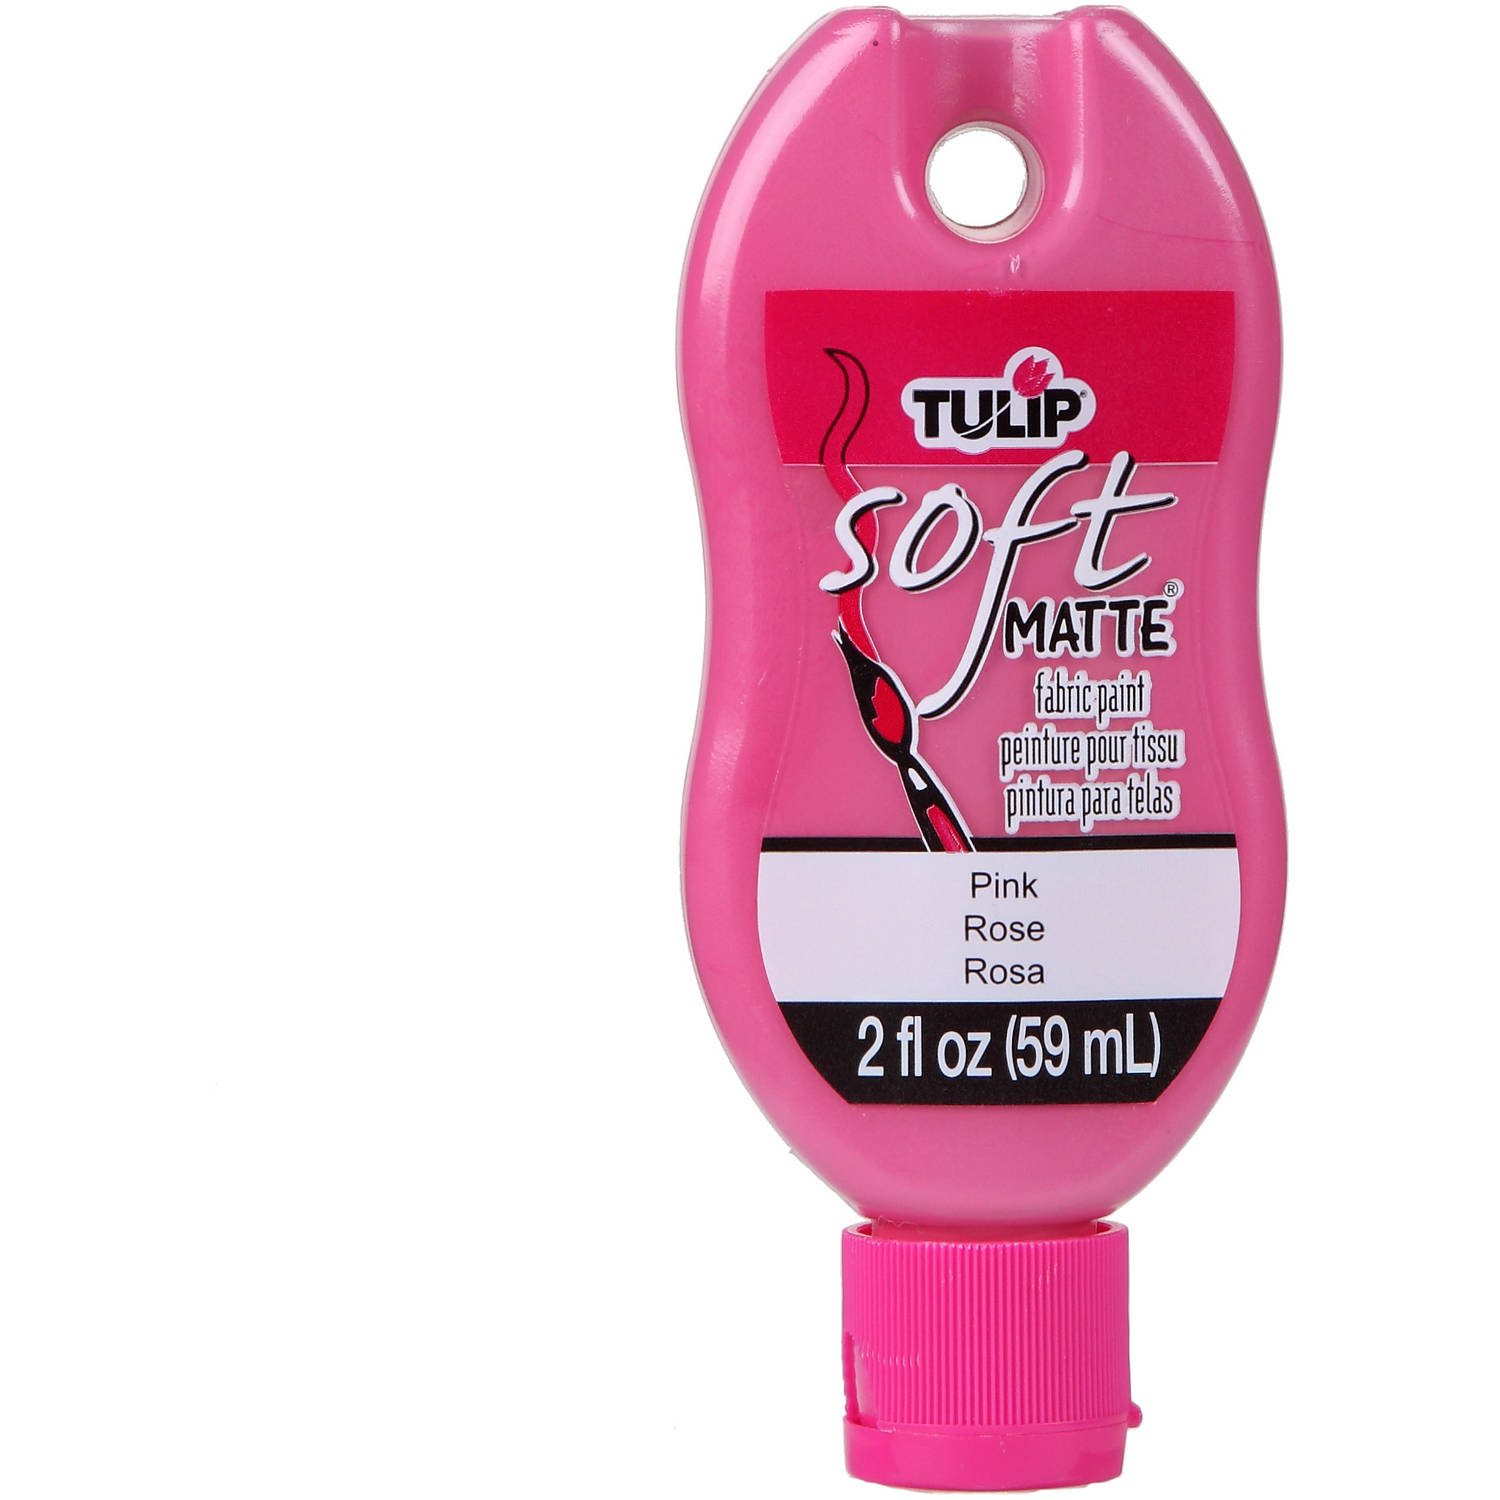 Tulip Soft Matte Fabric Paint, 2oz